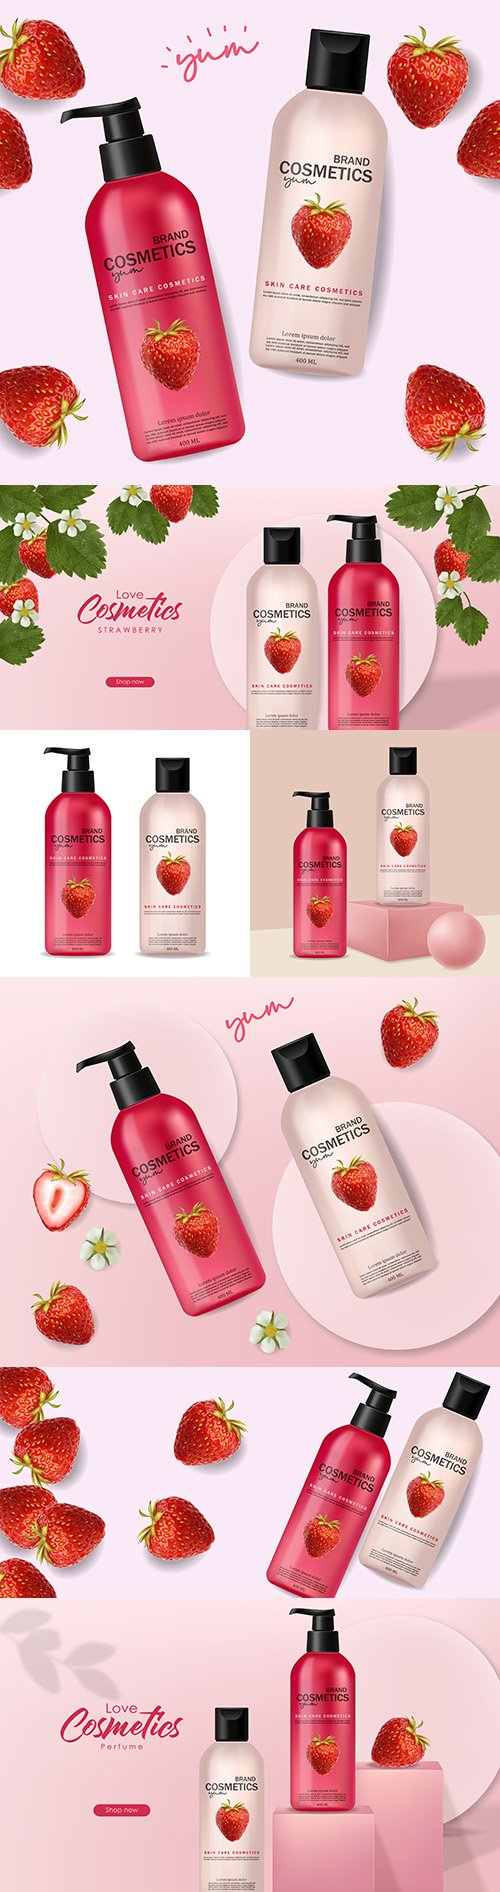 Fruit cosmetics for body care realistic illustrations 3